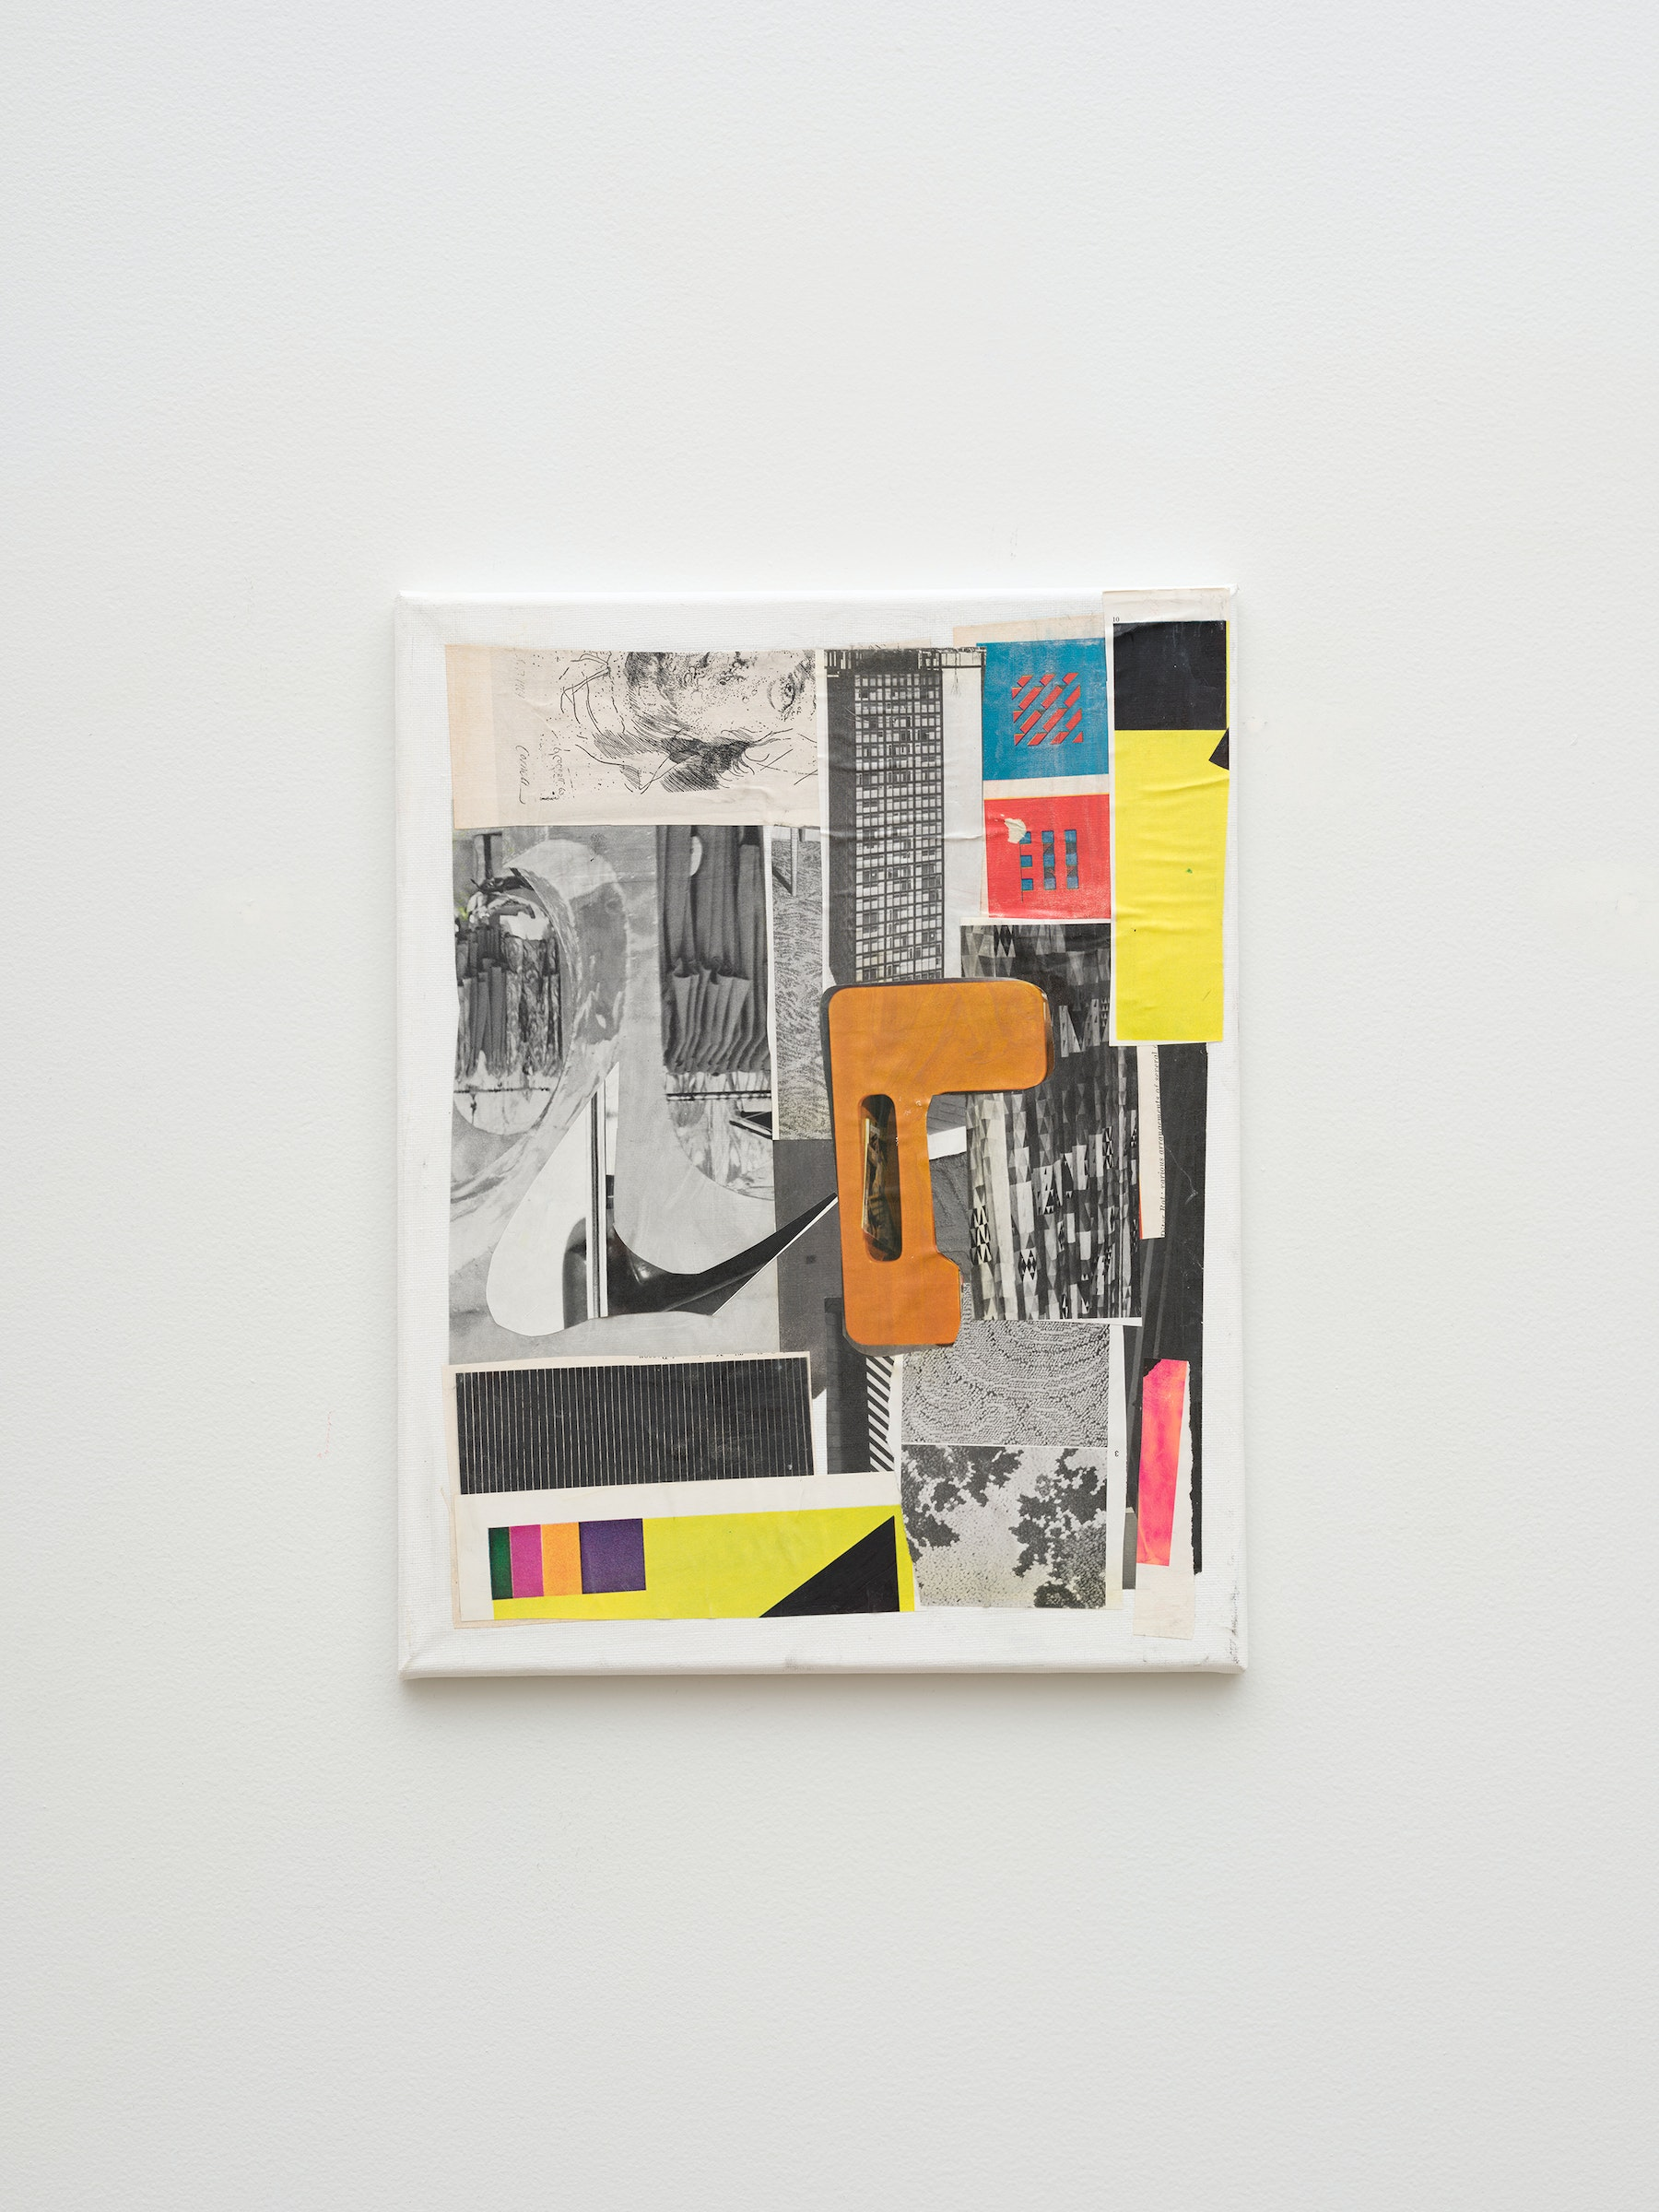 """Steve Roden """"story,"""" 2020 Mixed media on canvas 14"""" x 11"""" x 1"""" [HxWxD] (35.56 x 27.94 x 2.54 cm) Inventory #ROD708 Courtesy of the artist and Vielmetter Los Angeles Photo credit: Jeff McLane Signed and dated on the back"""